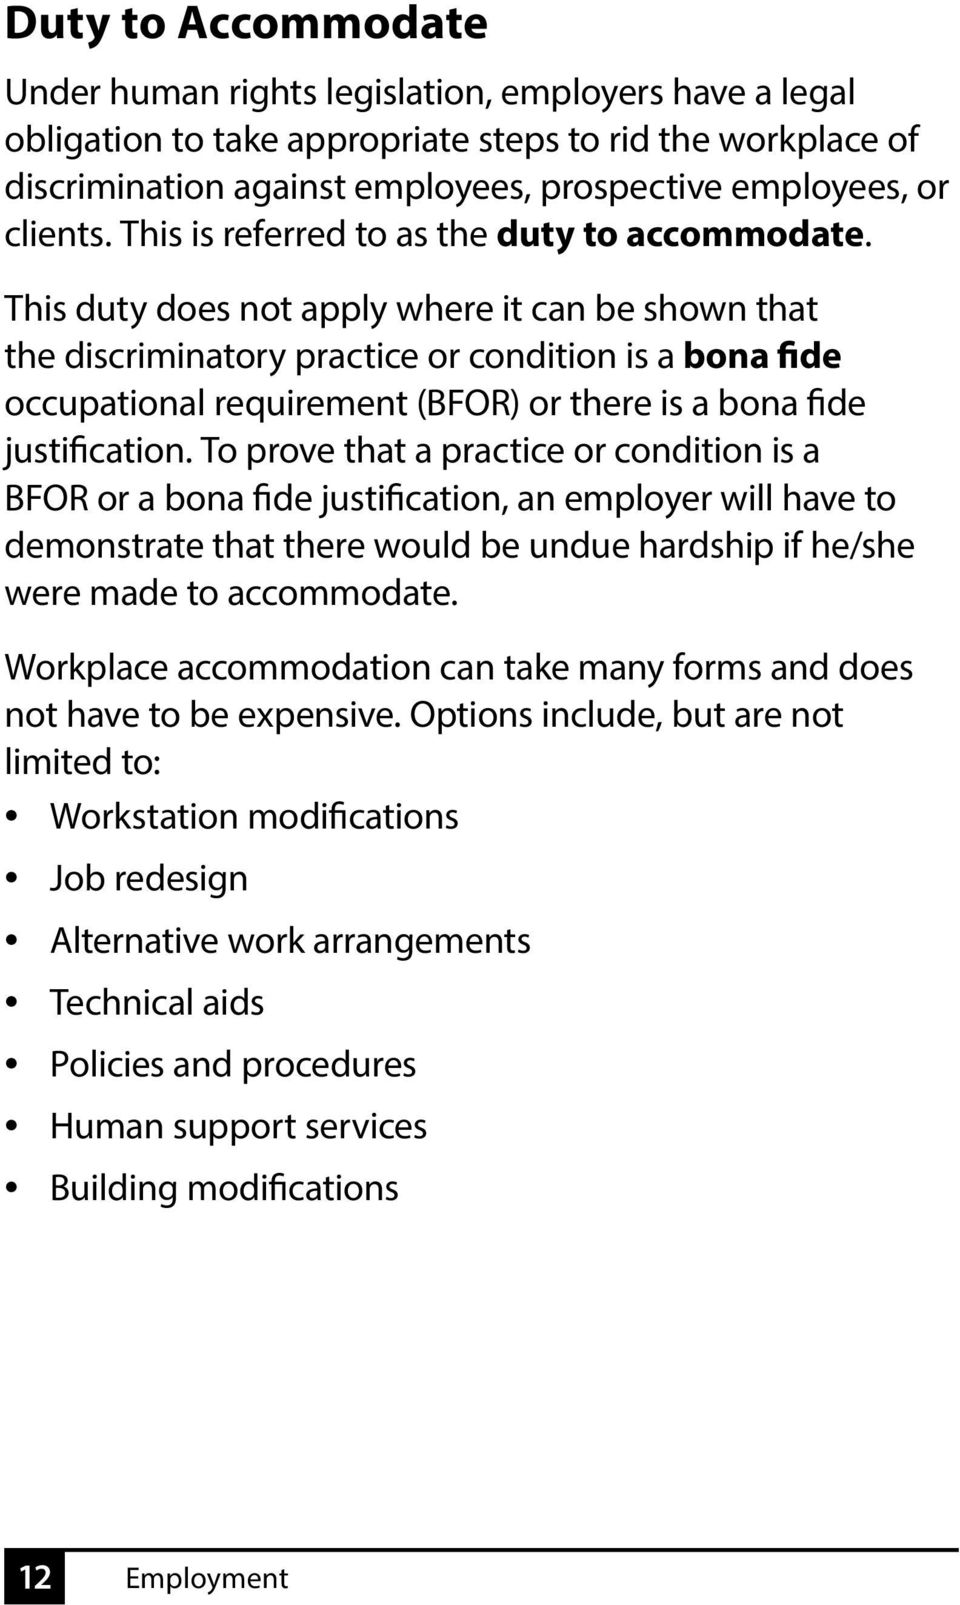 This duty does not apply where it can be shown that the discriminatory practice or condition is a bona fide occupational requirement (BFOR) or there is a bona fide justification.